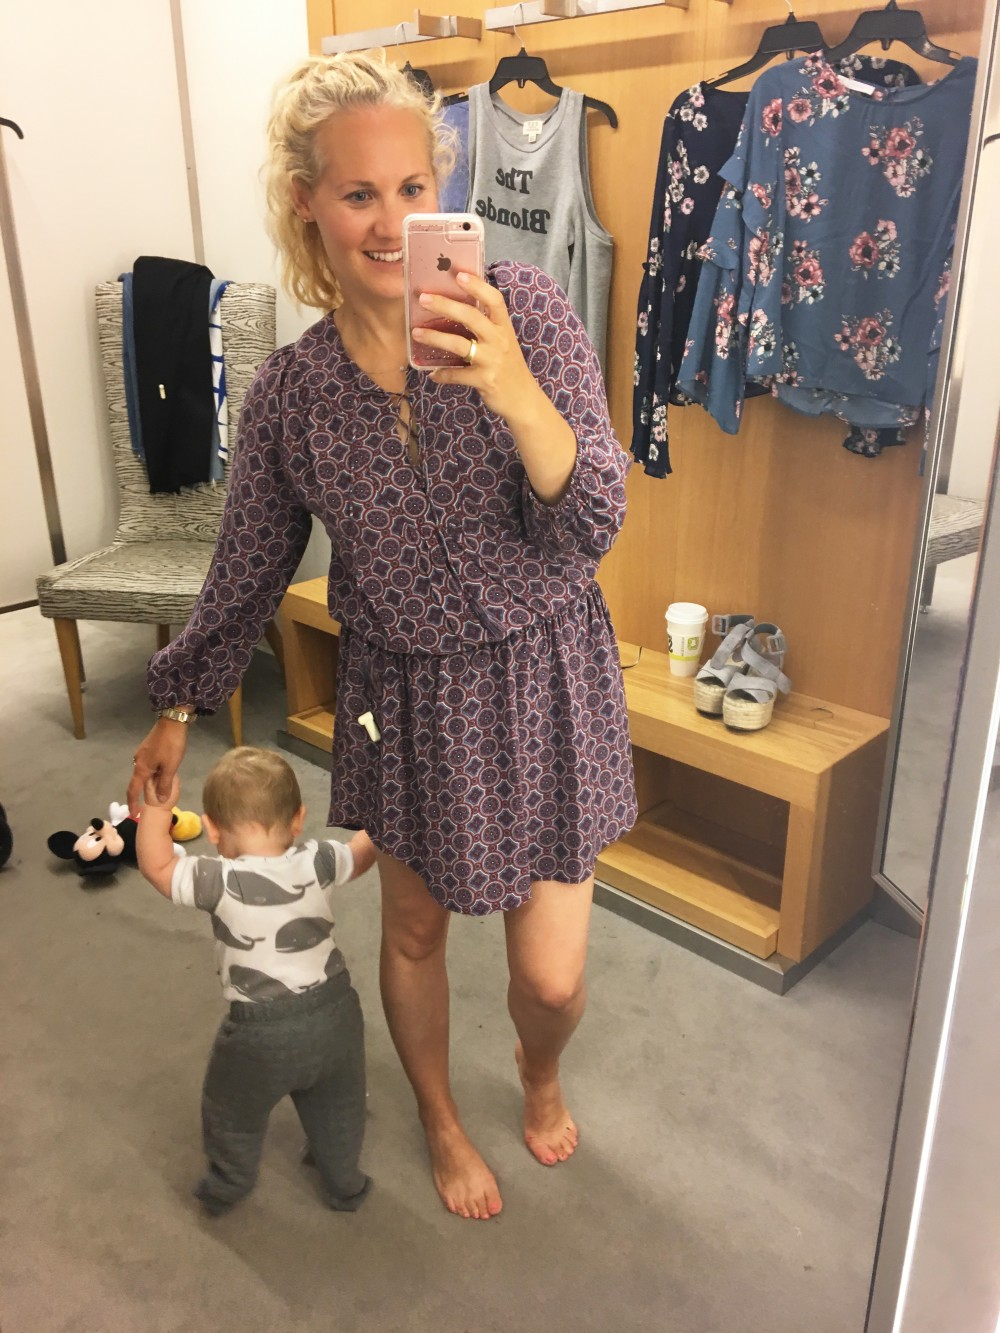 Dressing Room Diaries- Nordstrom Anniversary Sale-Fall Dresses-Blogger Picks for the NSale-Nordstrom Sale-Fall Style-Fall Fashion 2017-Have Need Want